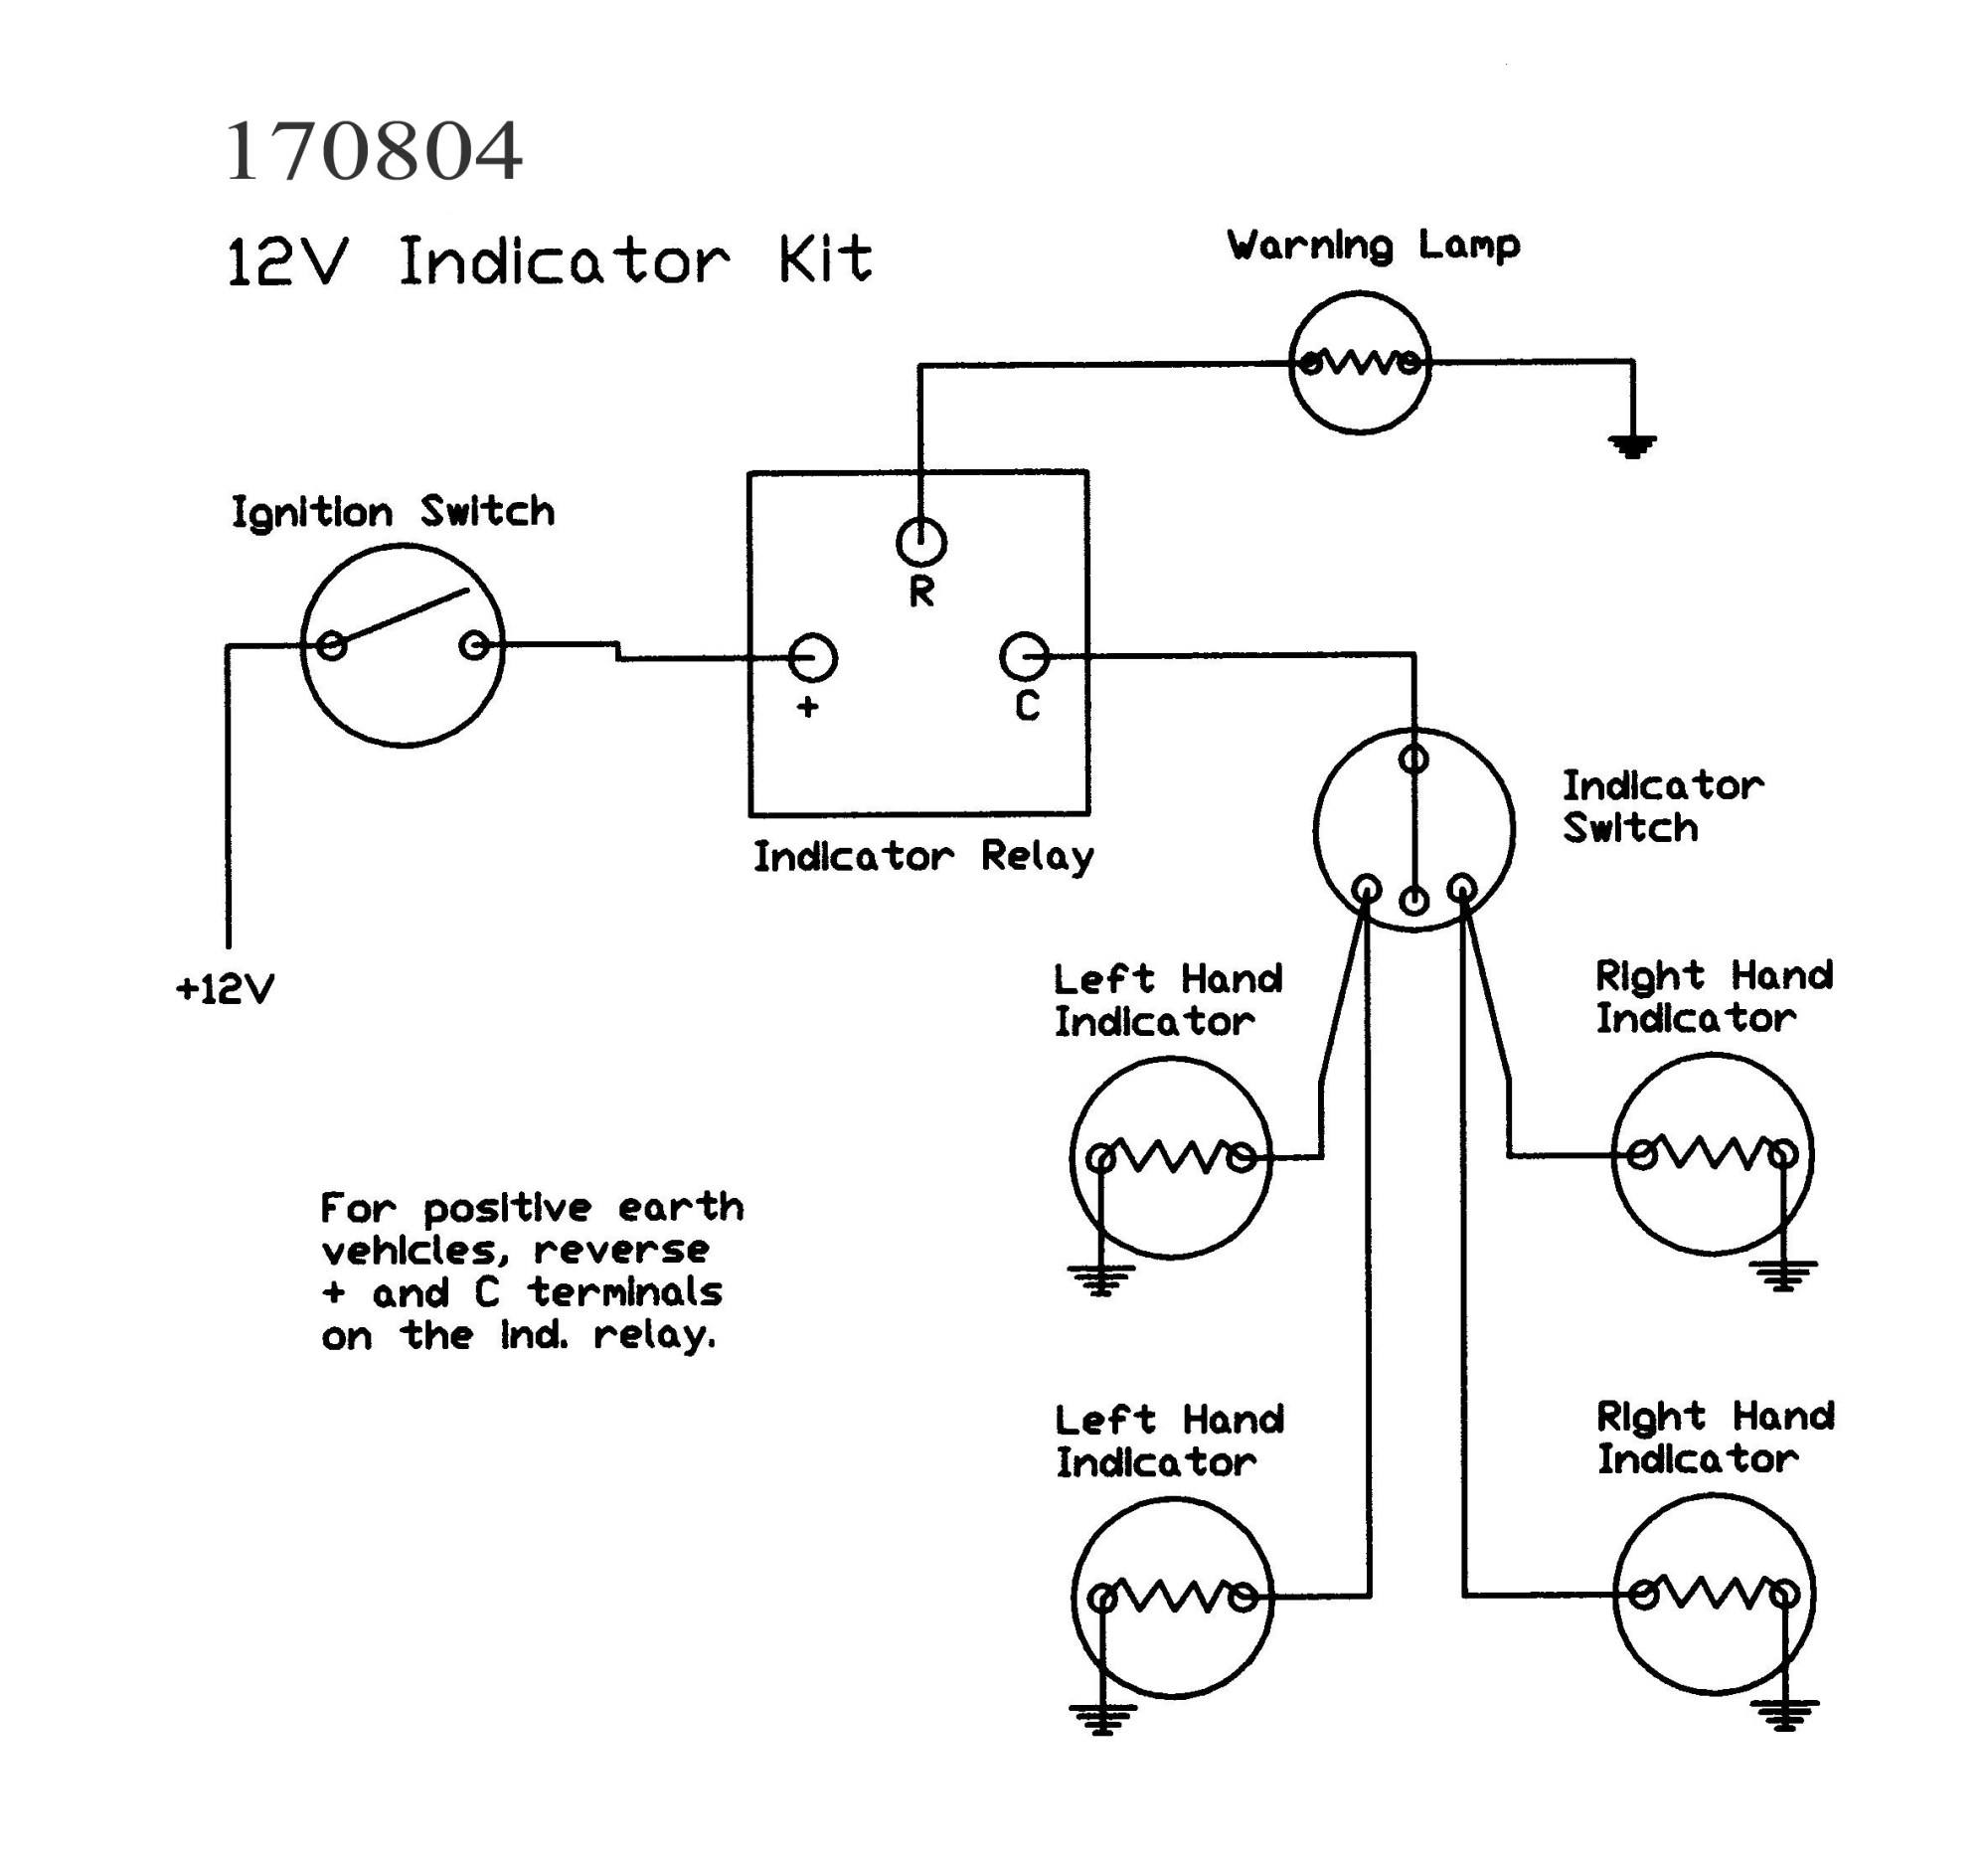 hight resolution of 12v flasher relay wiring diagram wiring diagram list 12v flasher relay wiring wiring diagrams 12v flasher